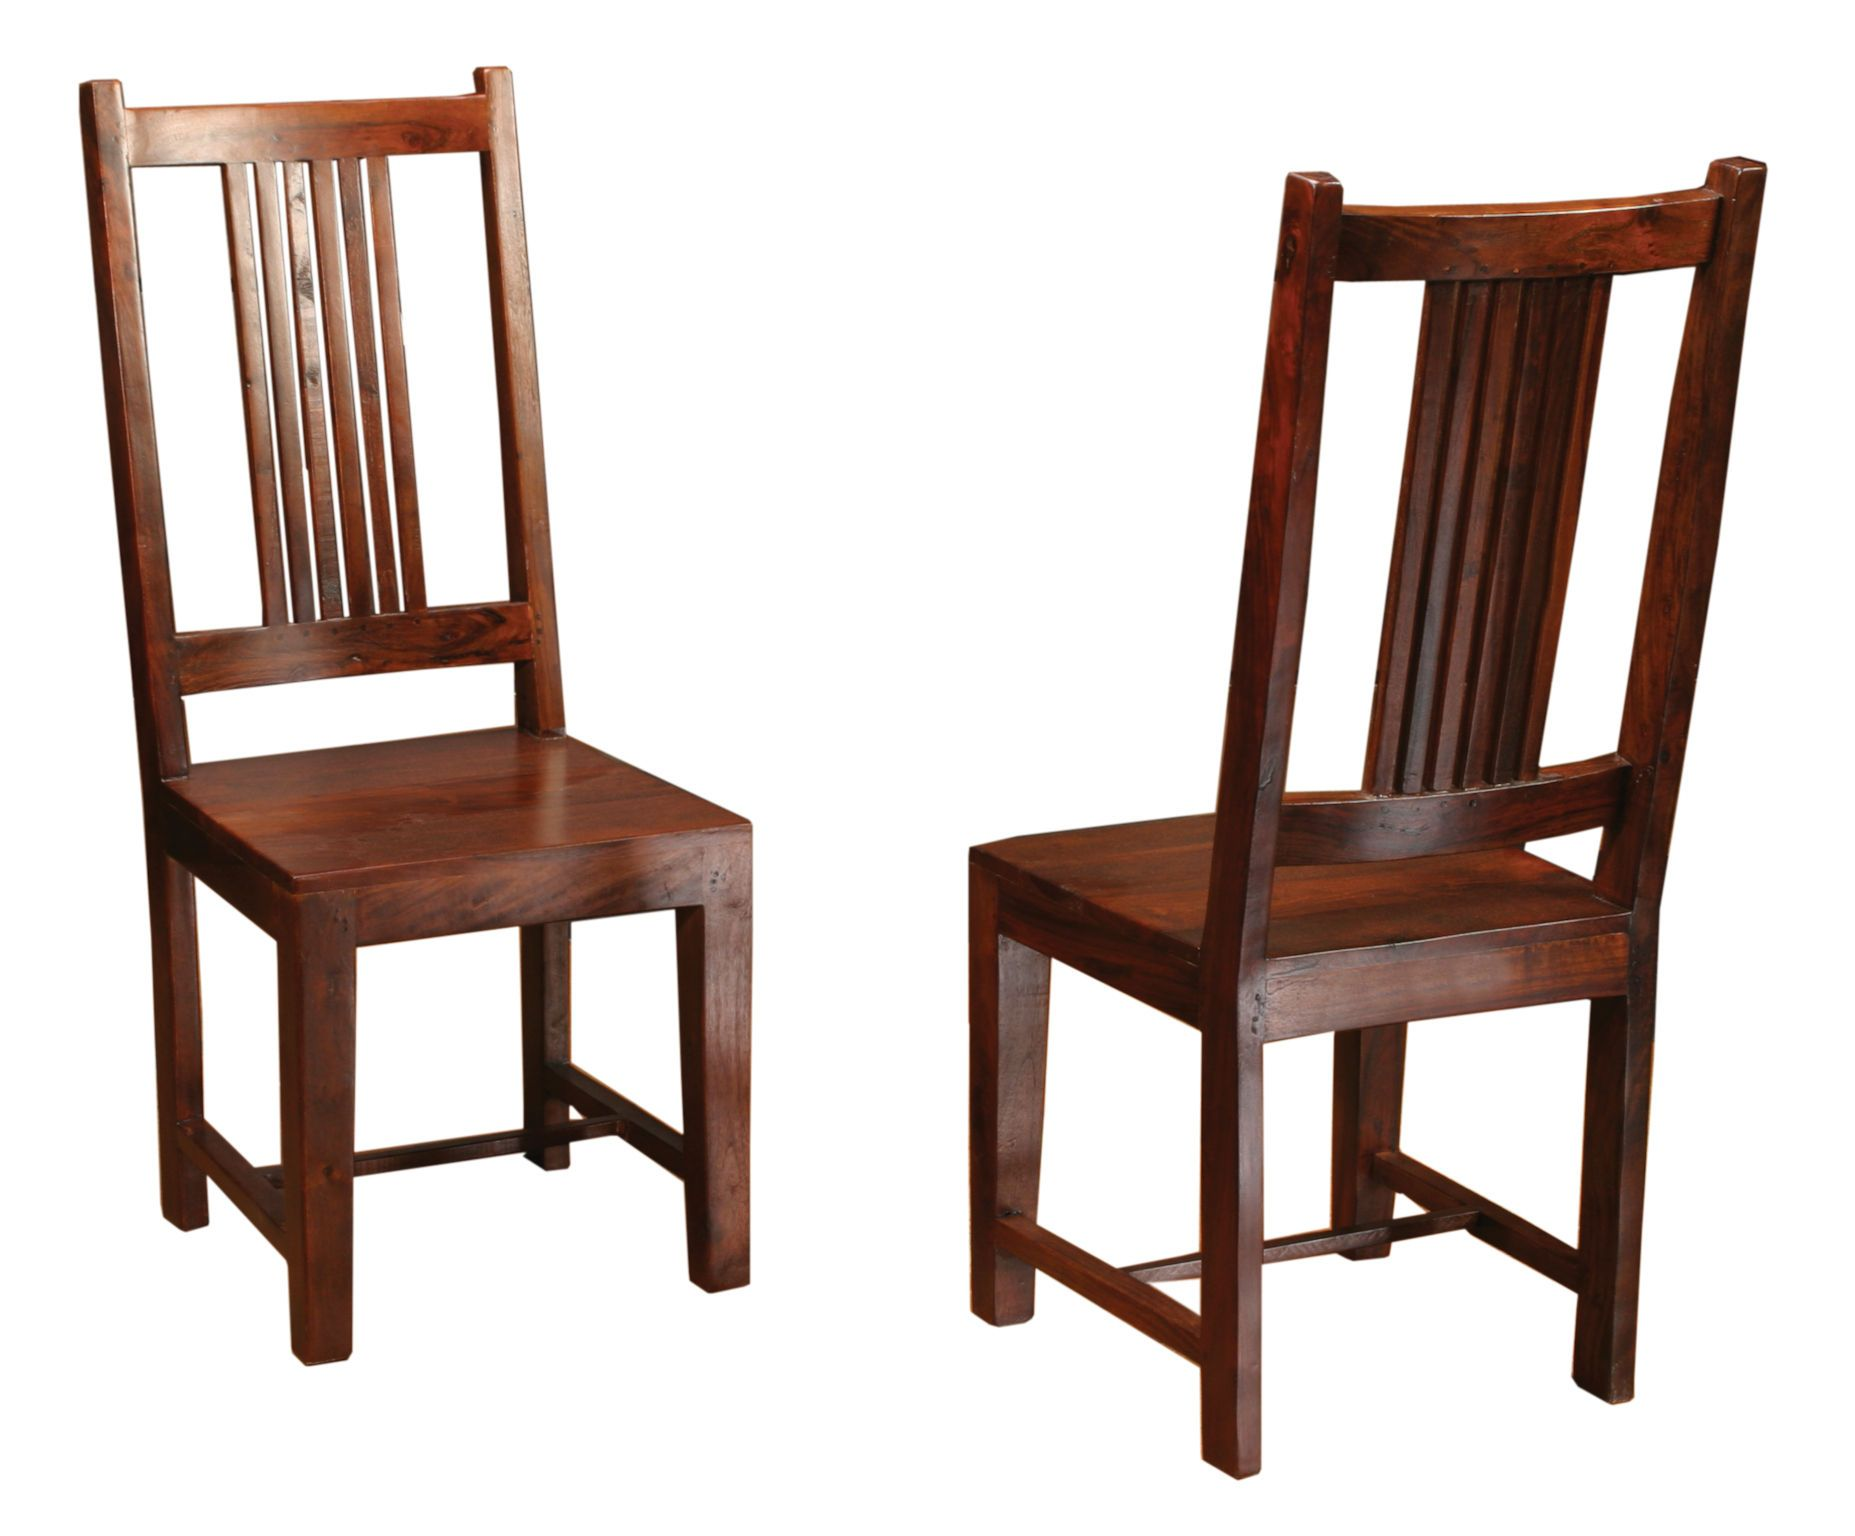 Provence Dining Chair Christian Street Furniture Solid Wood